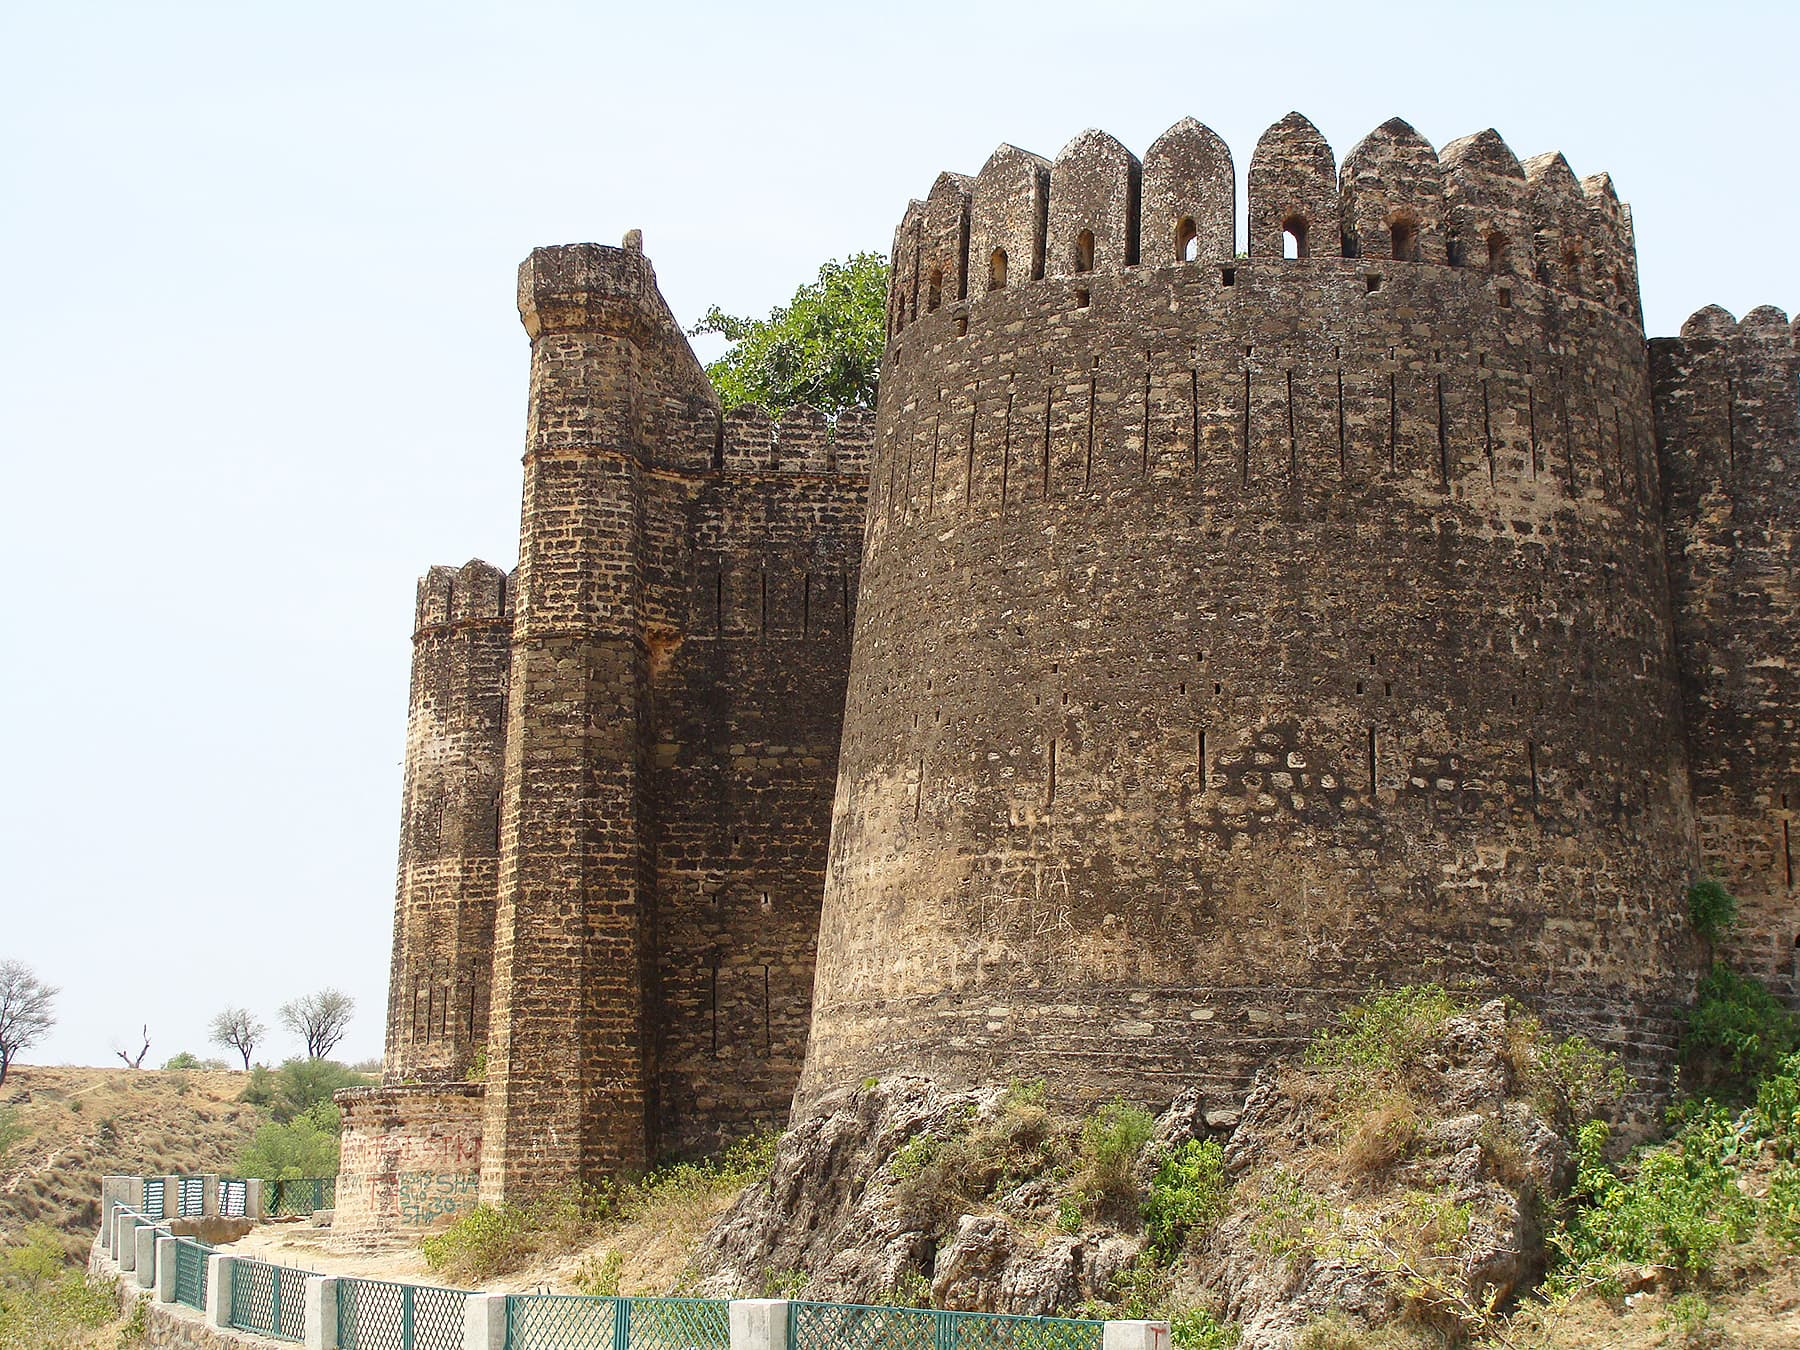 A view of Sangni Fort from the west.